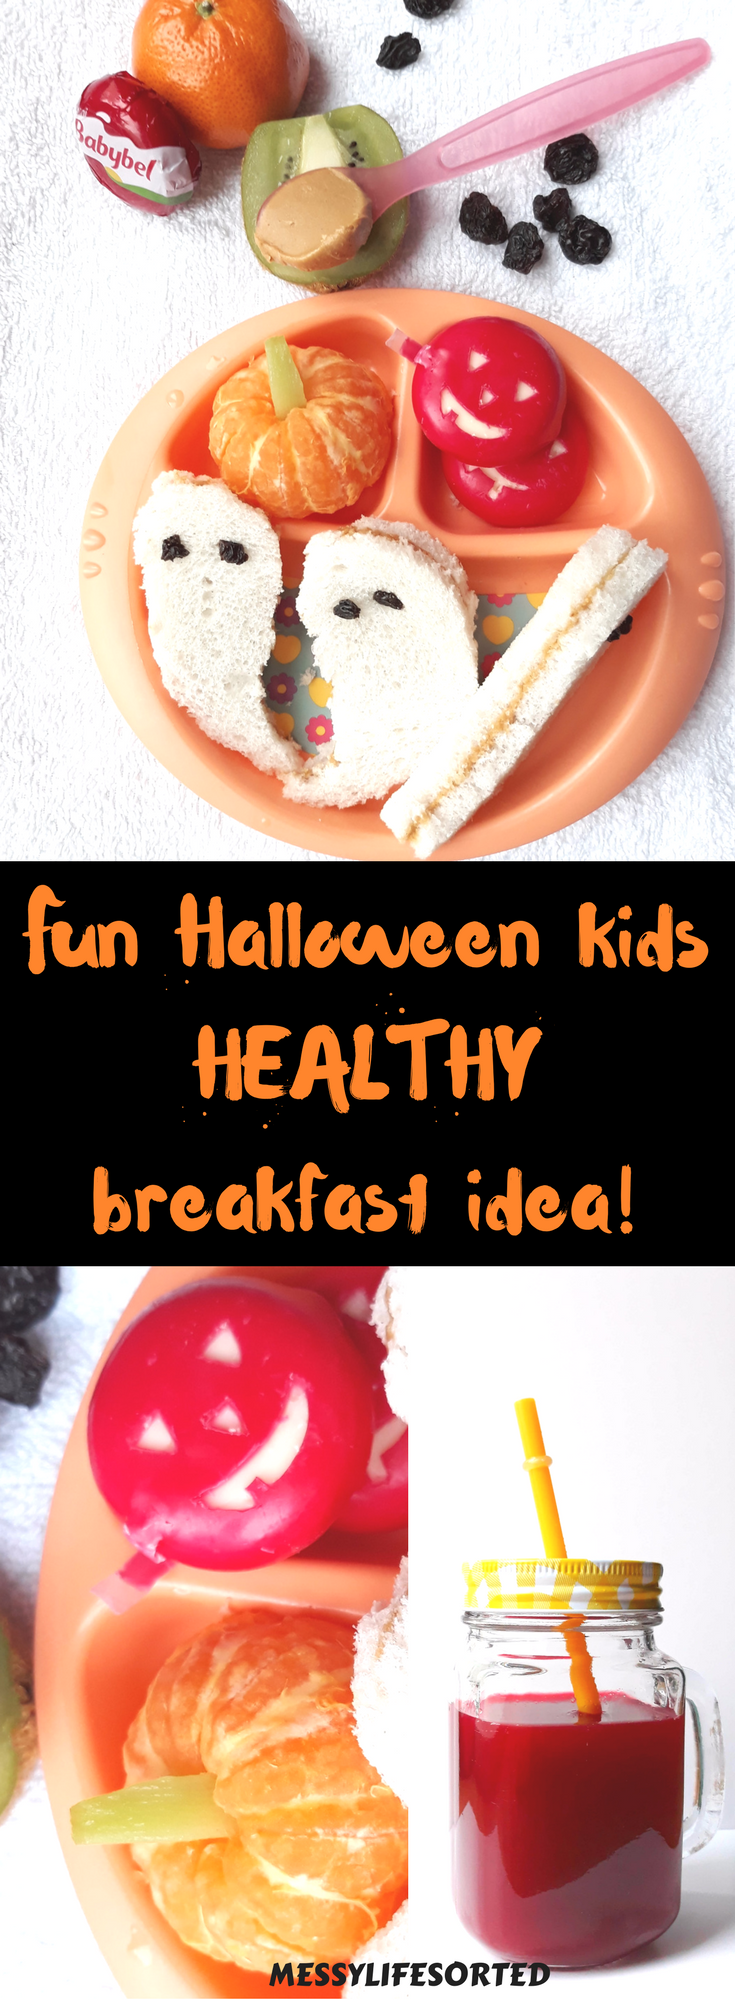 HEALTHY HALLOWEEN BREAKFAST IDEA FOR KIDS #halloweenbreakfastforkids A healthy start to Halloween with this fun healthy breakfast idea for kids #halloweenbreakfastforkids